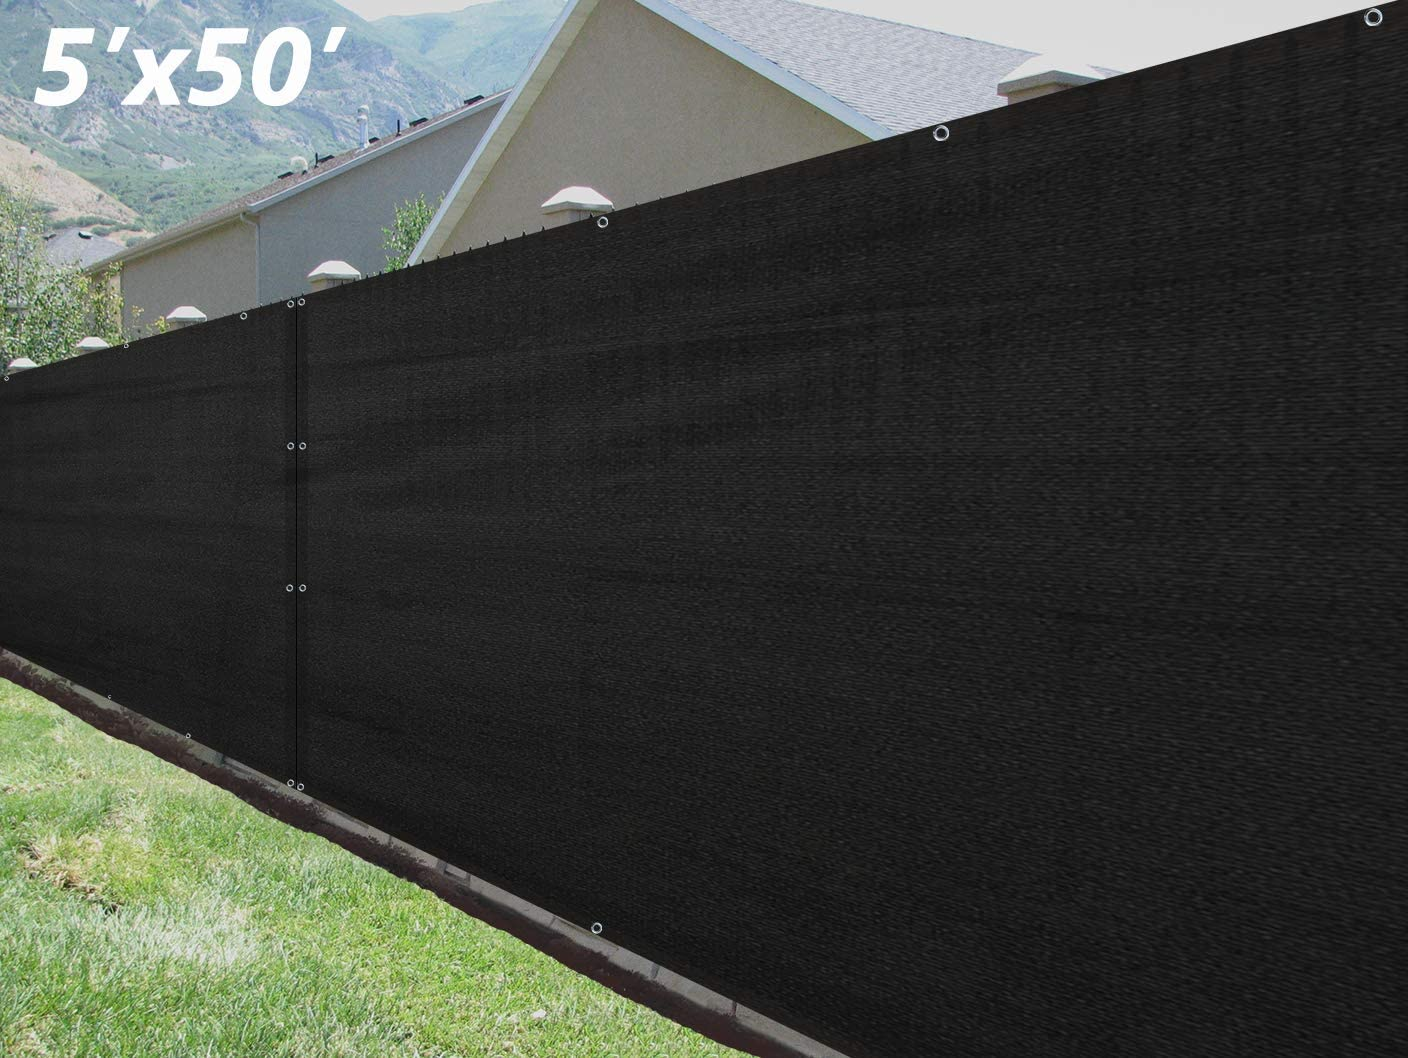 SUNNY GUARD Privacy Screen Fence 5 x 50 Heavy Duty Fence Mesh Windscreen Cover Fabric Shade Blockage UV-Black